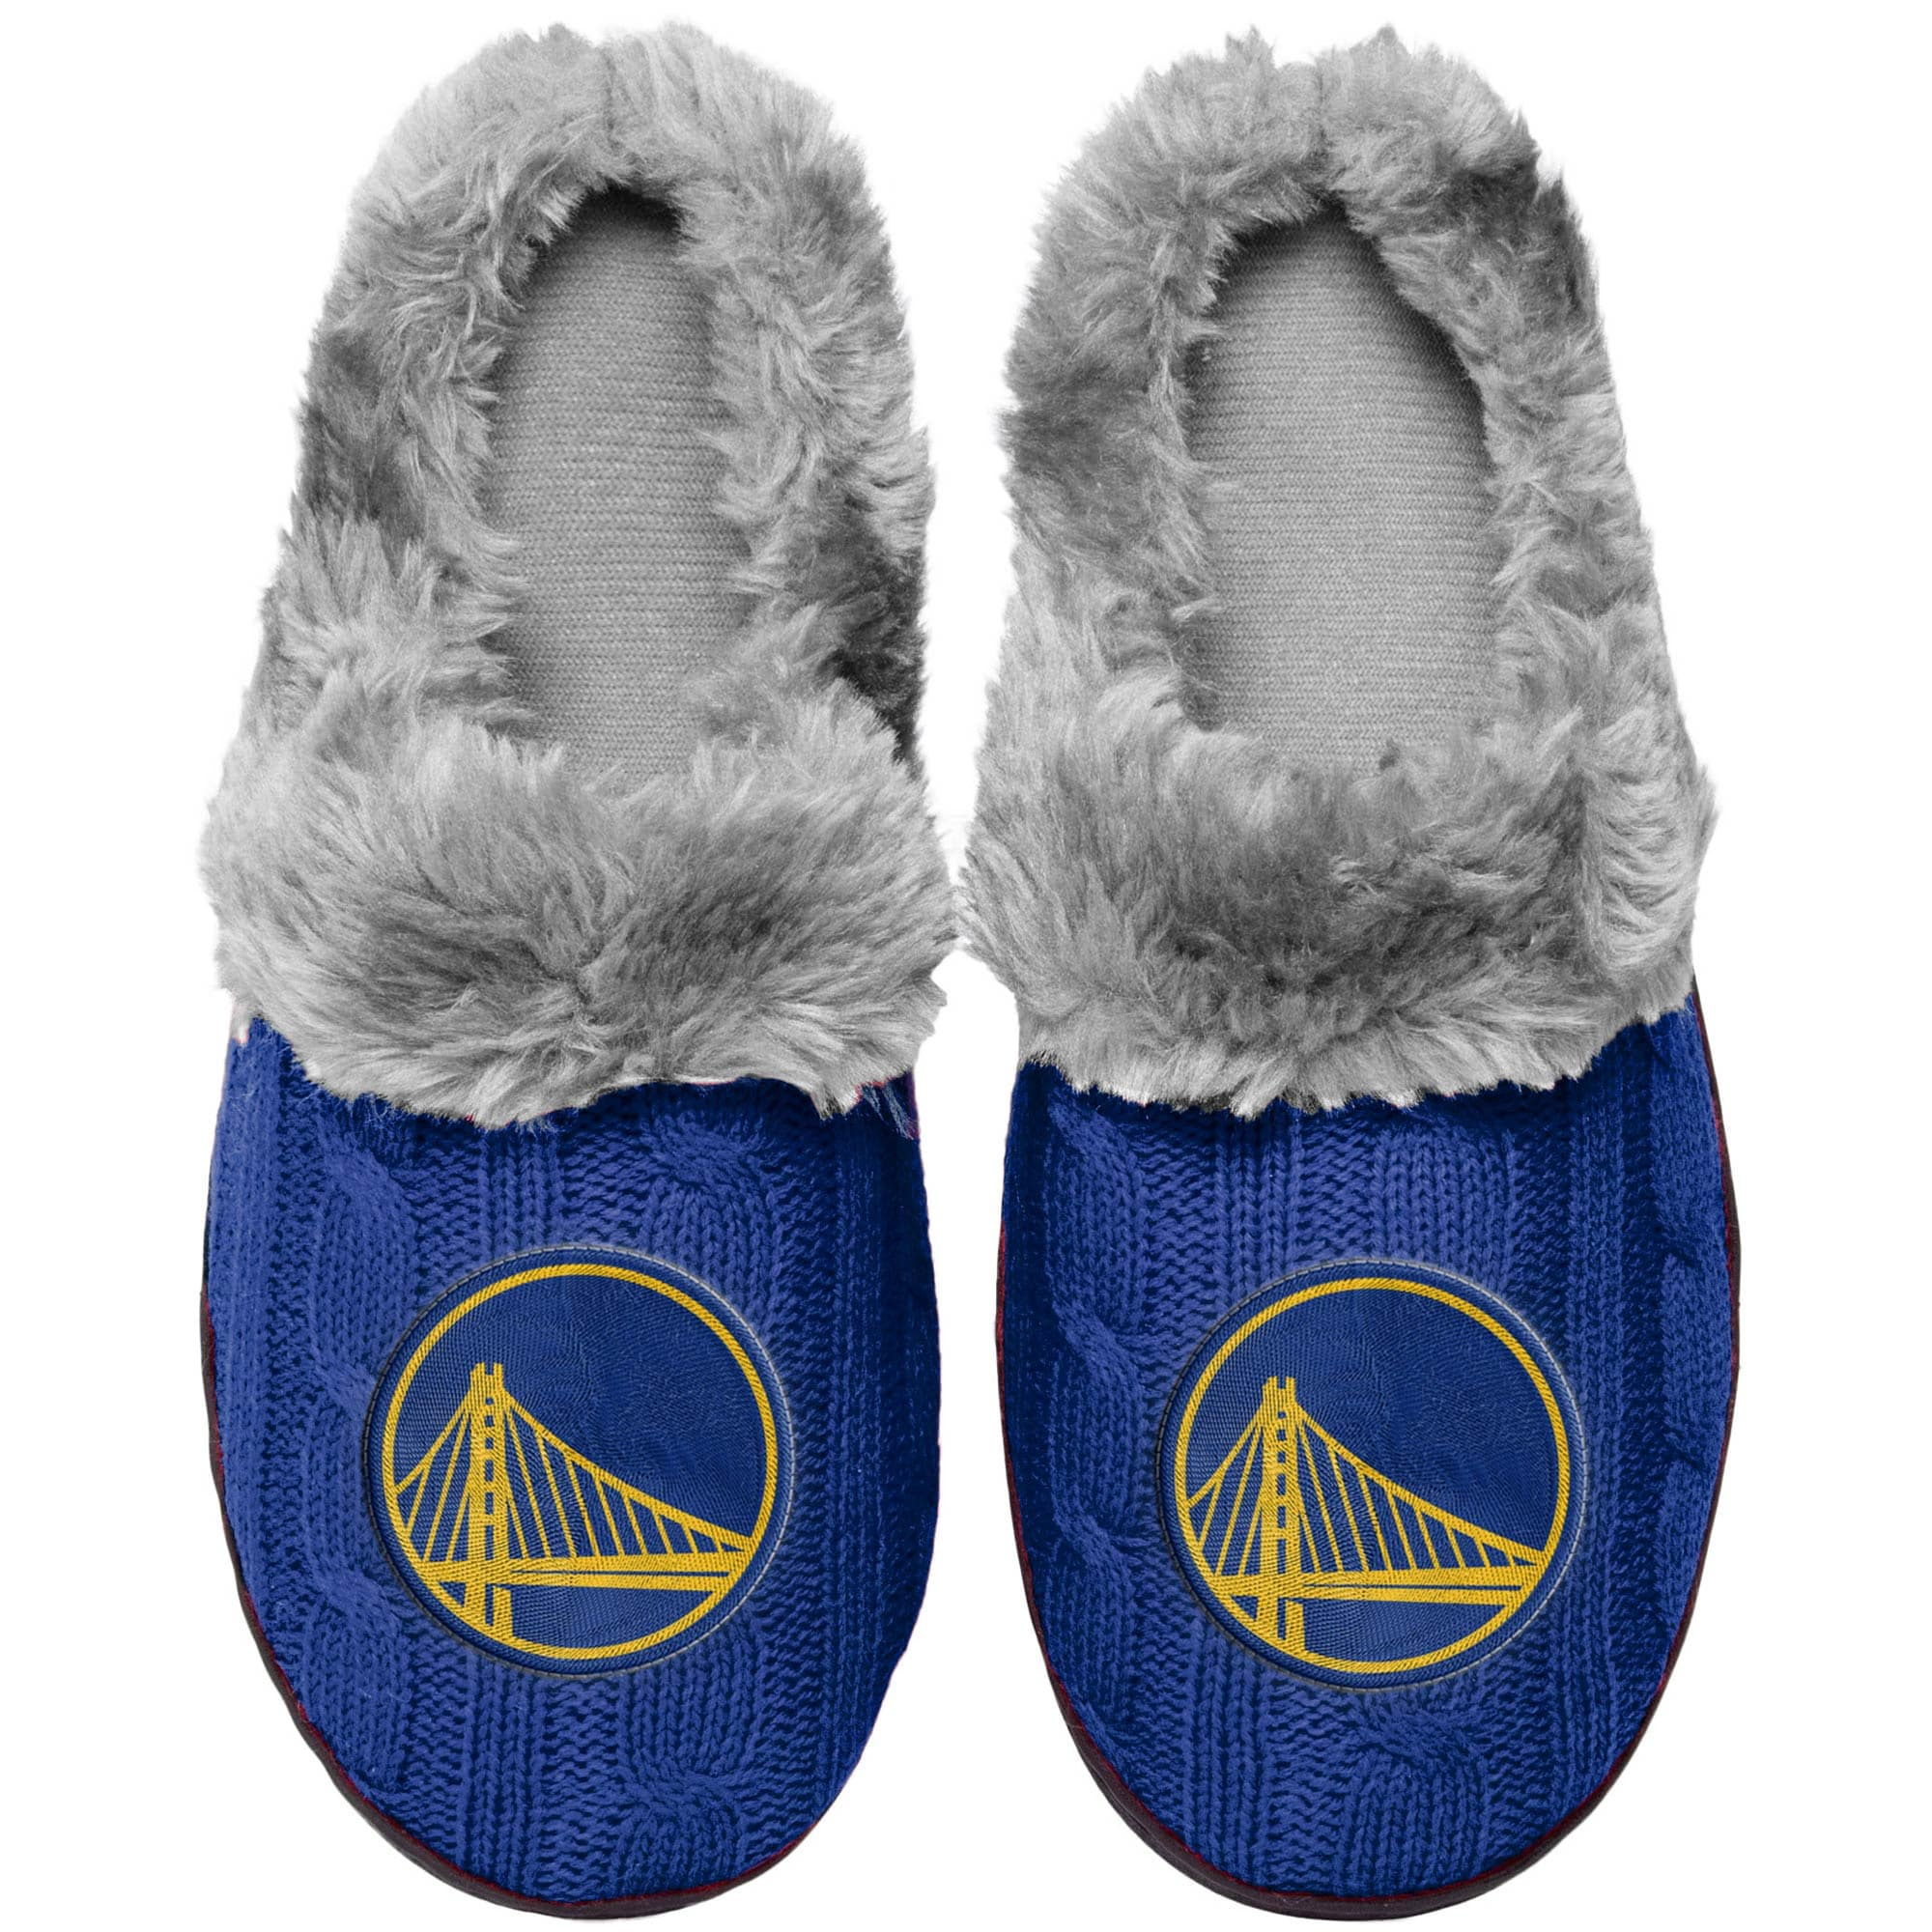 Cable Knit Slide Slippers - Walmart